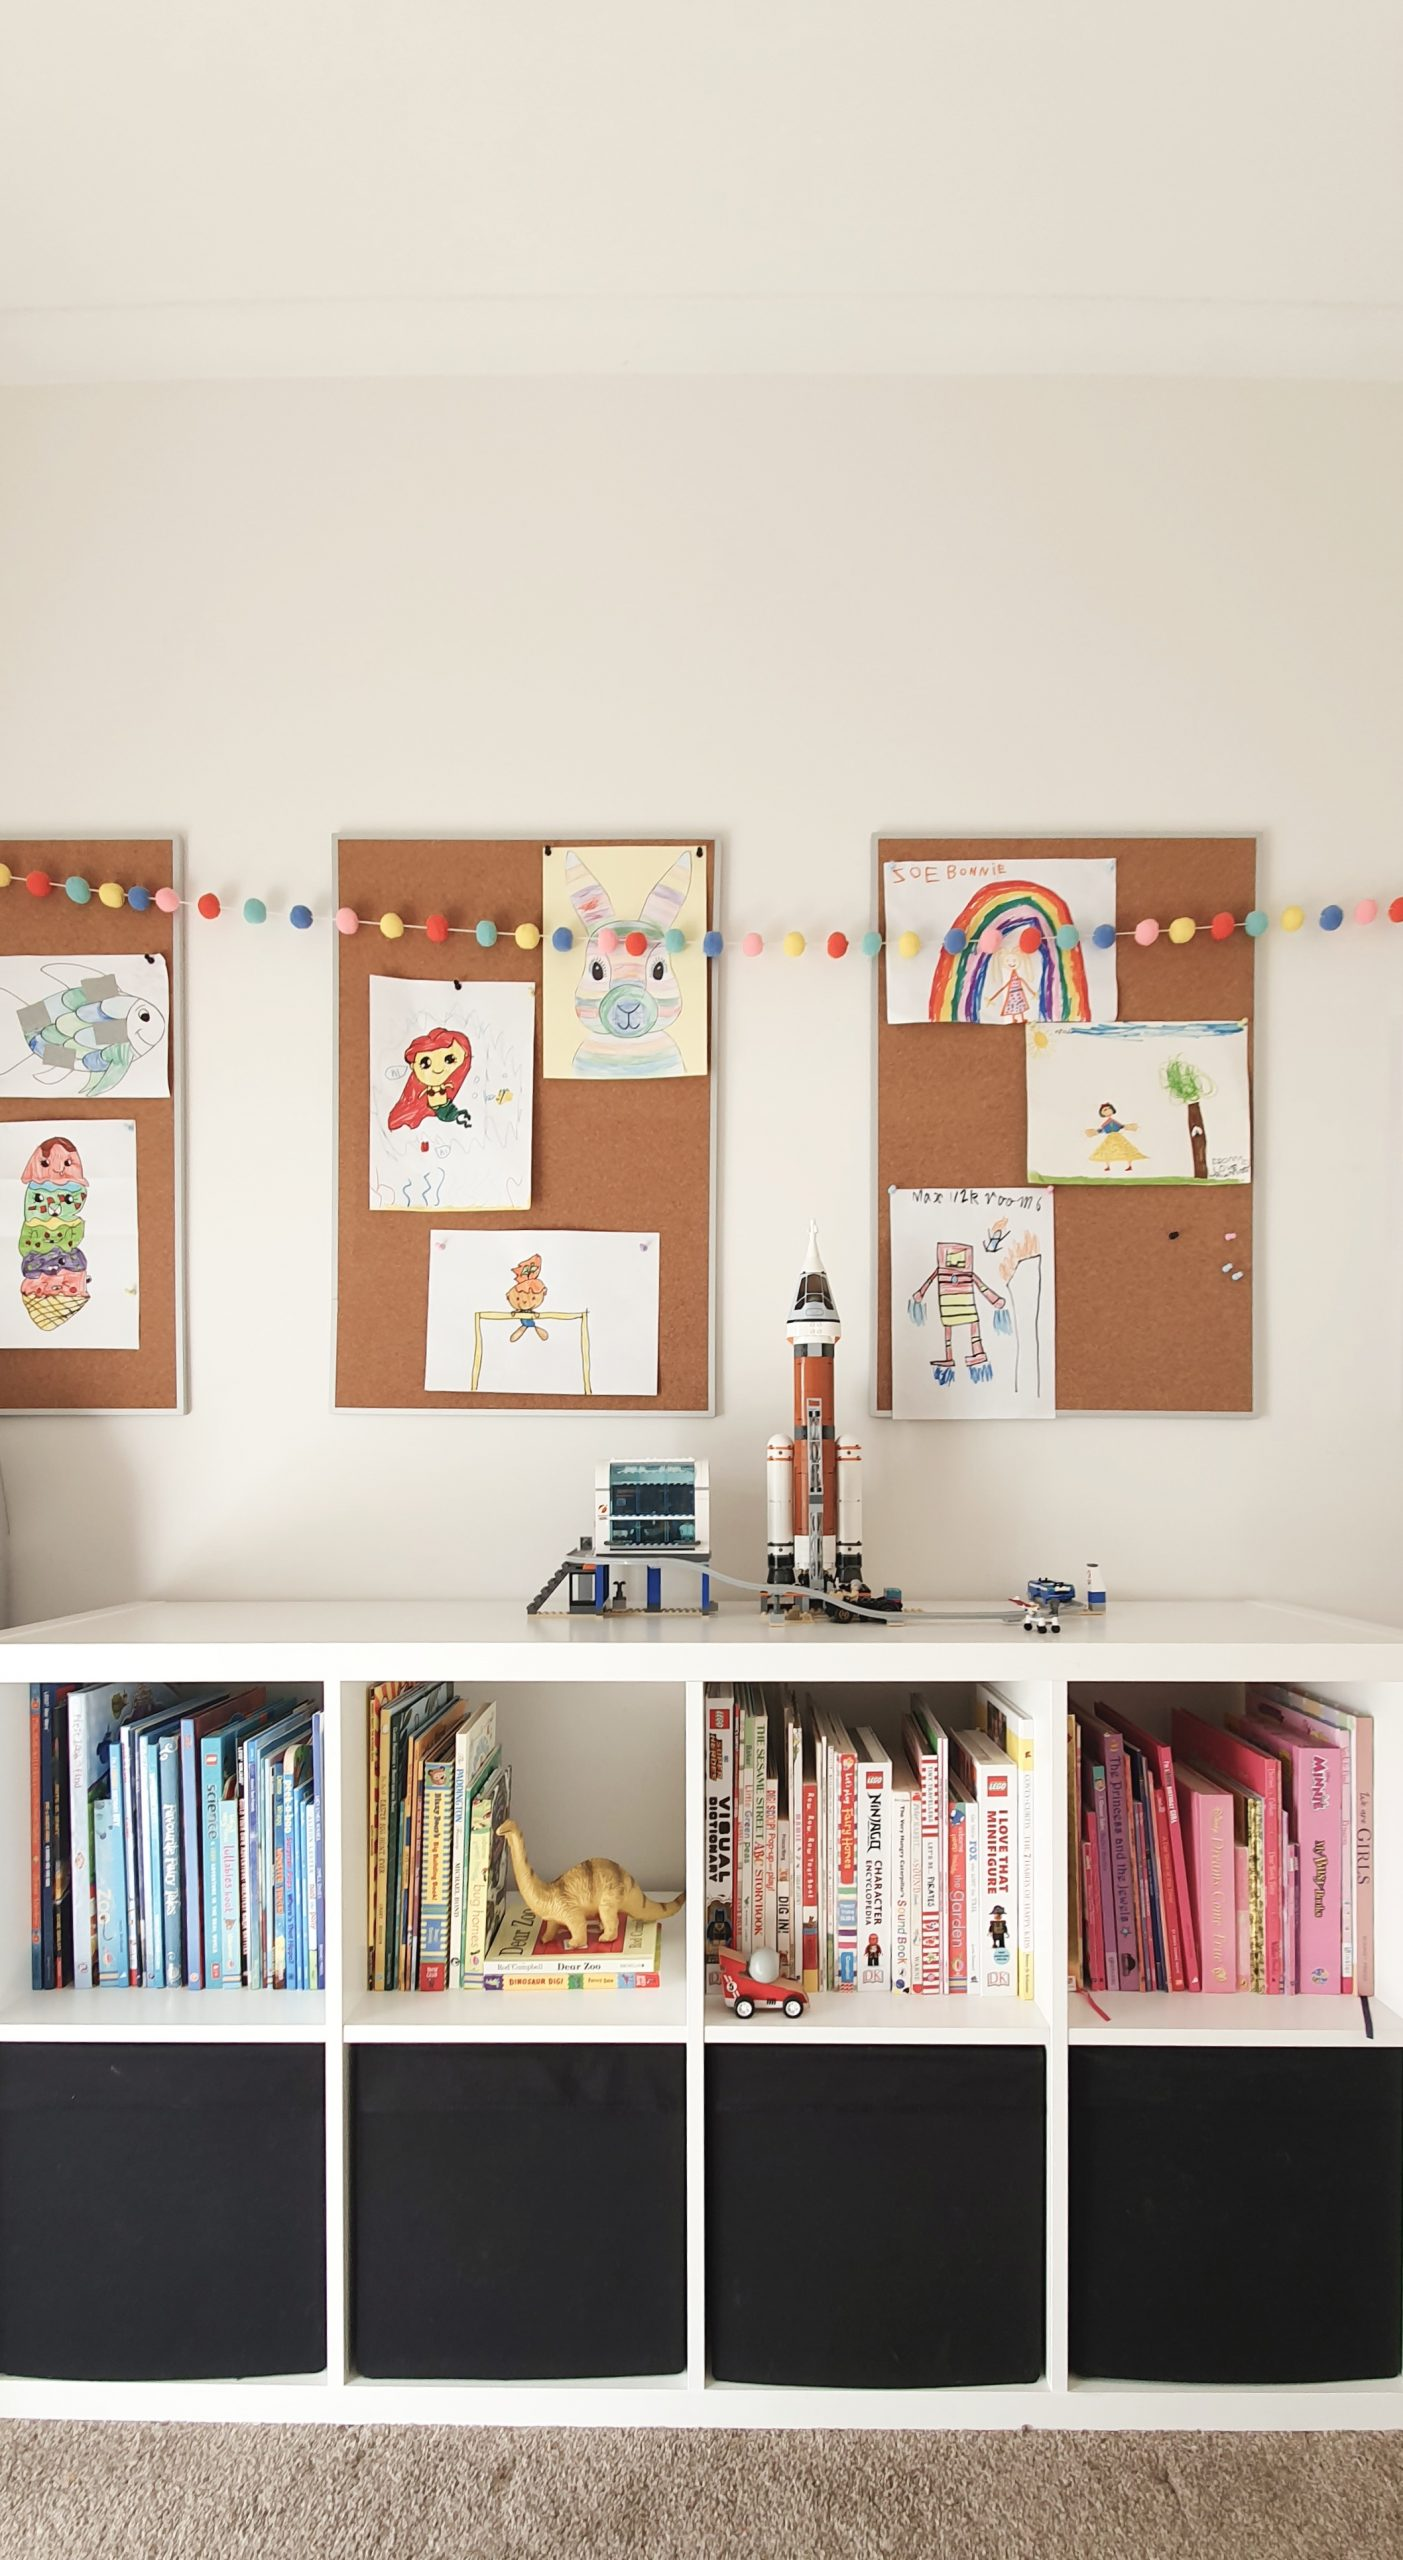 Our Little Playroom  -  Kallax cube shelving toy storage. Pin board kid's artwork display.